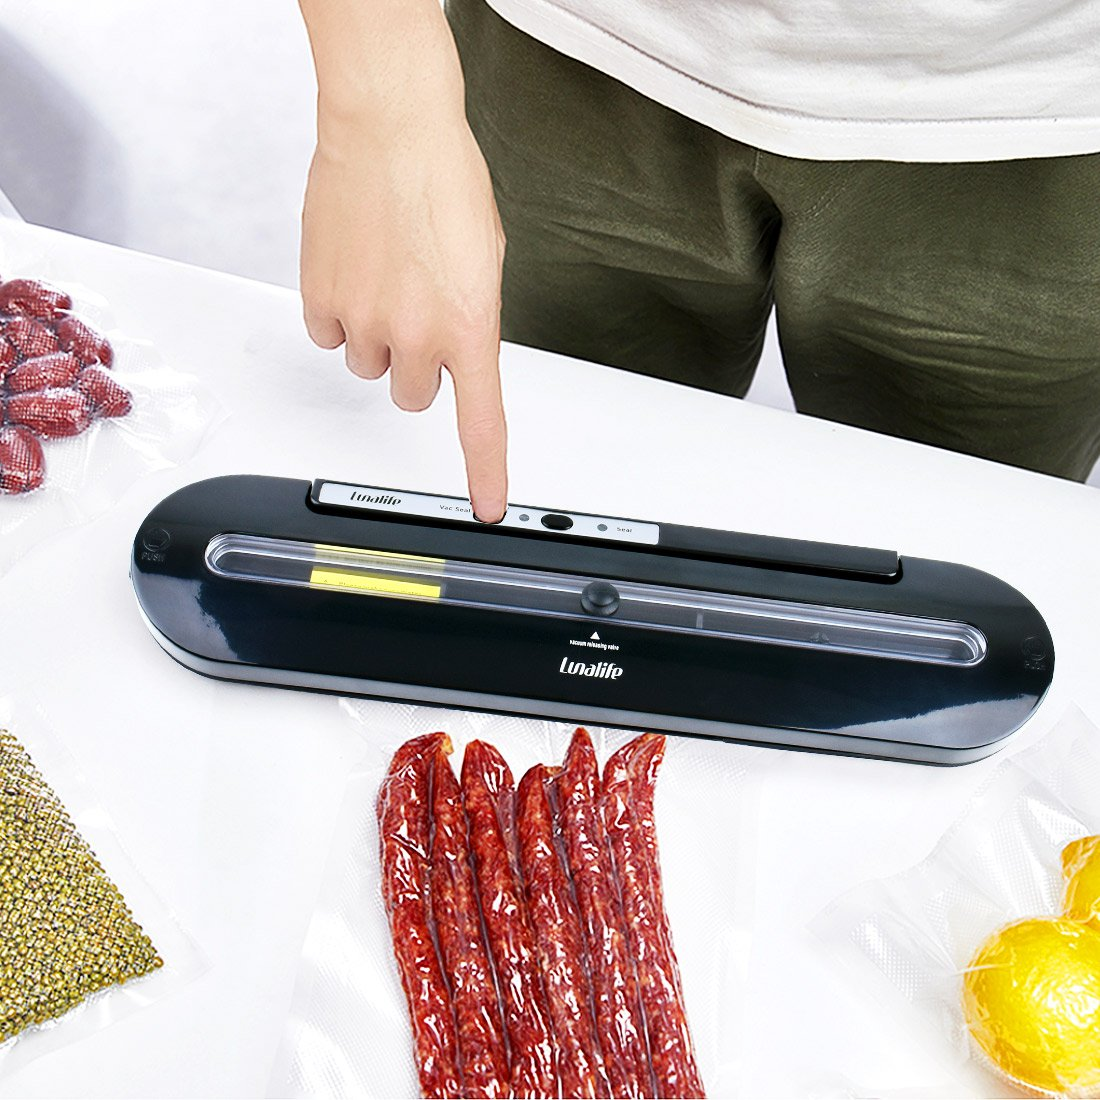 Vacuum Sealer Upgraded Automatic Vacuum Air Sealing System Preserve & Store Food Vacuo for Sous Vide Cooking Roll of Vacuum Bags (Black) by LunaLife (Image #2)